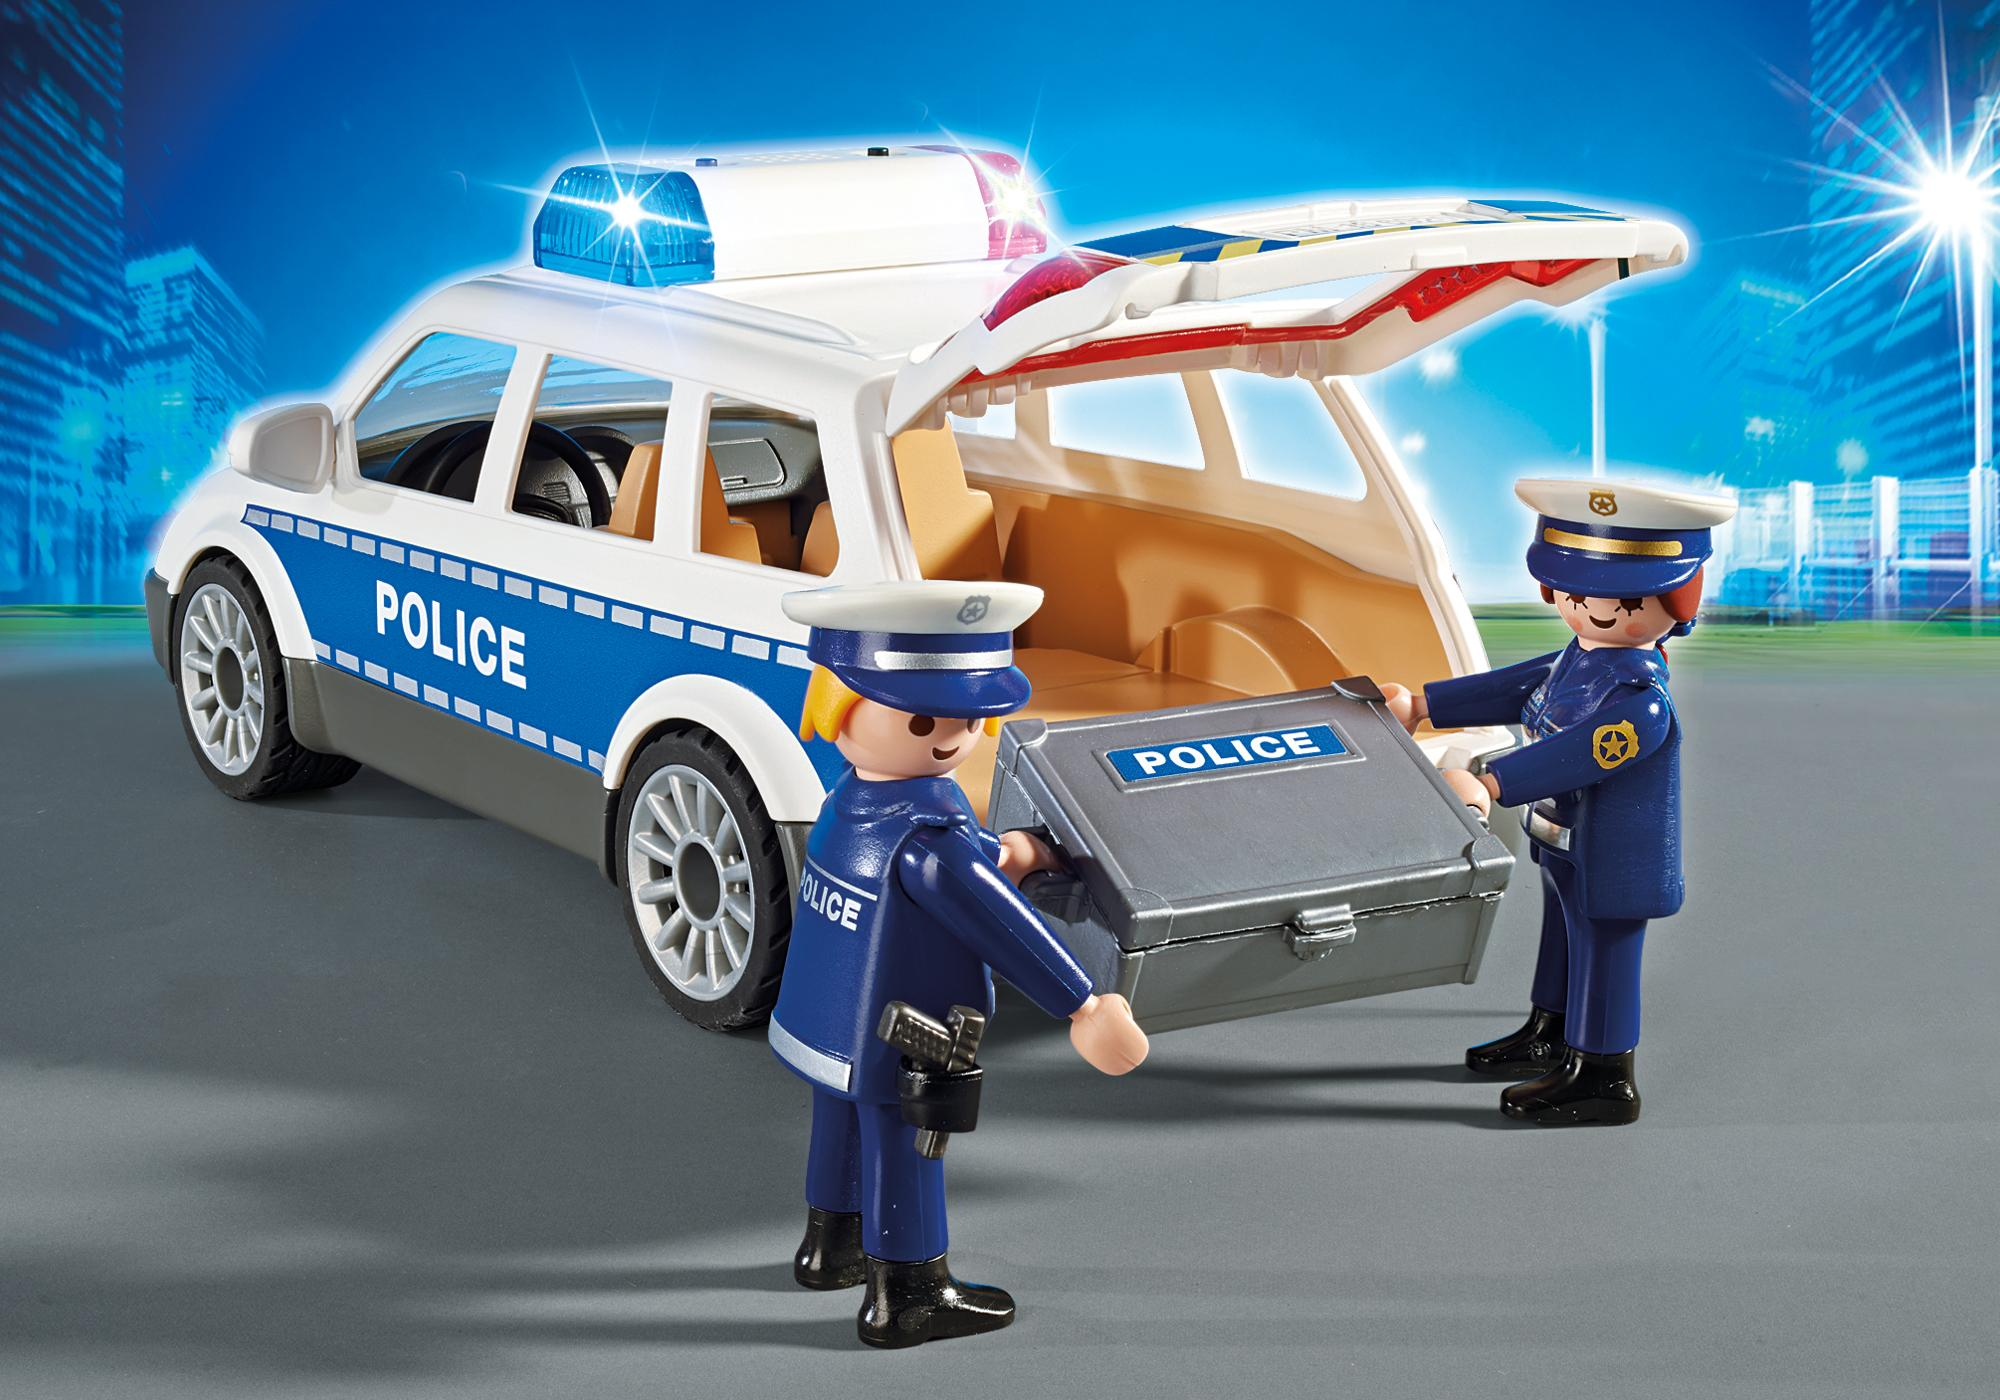 http://media.playmobil.com/i/playmobil/6920_product_extra1/Squad Car with Lights and Sound